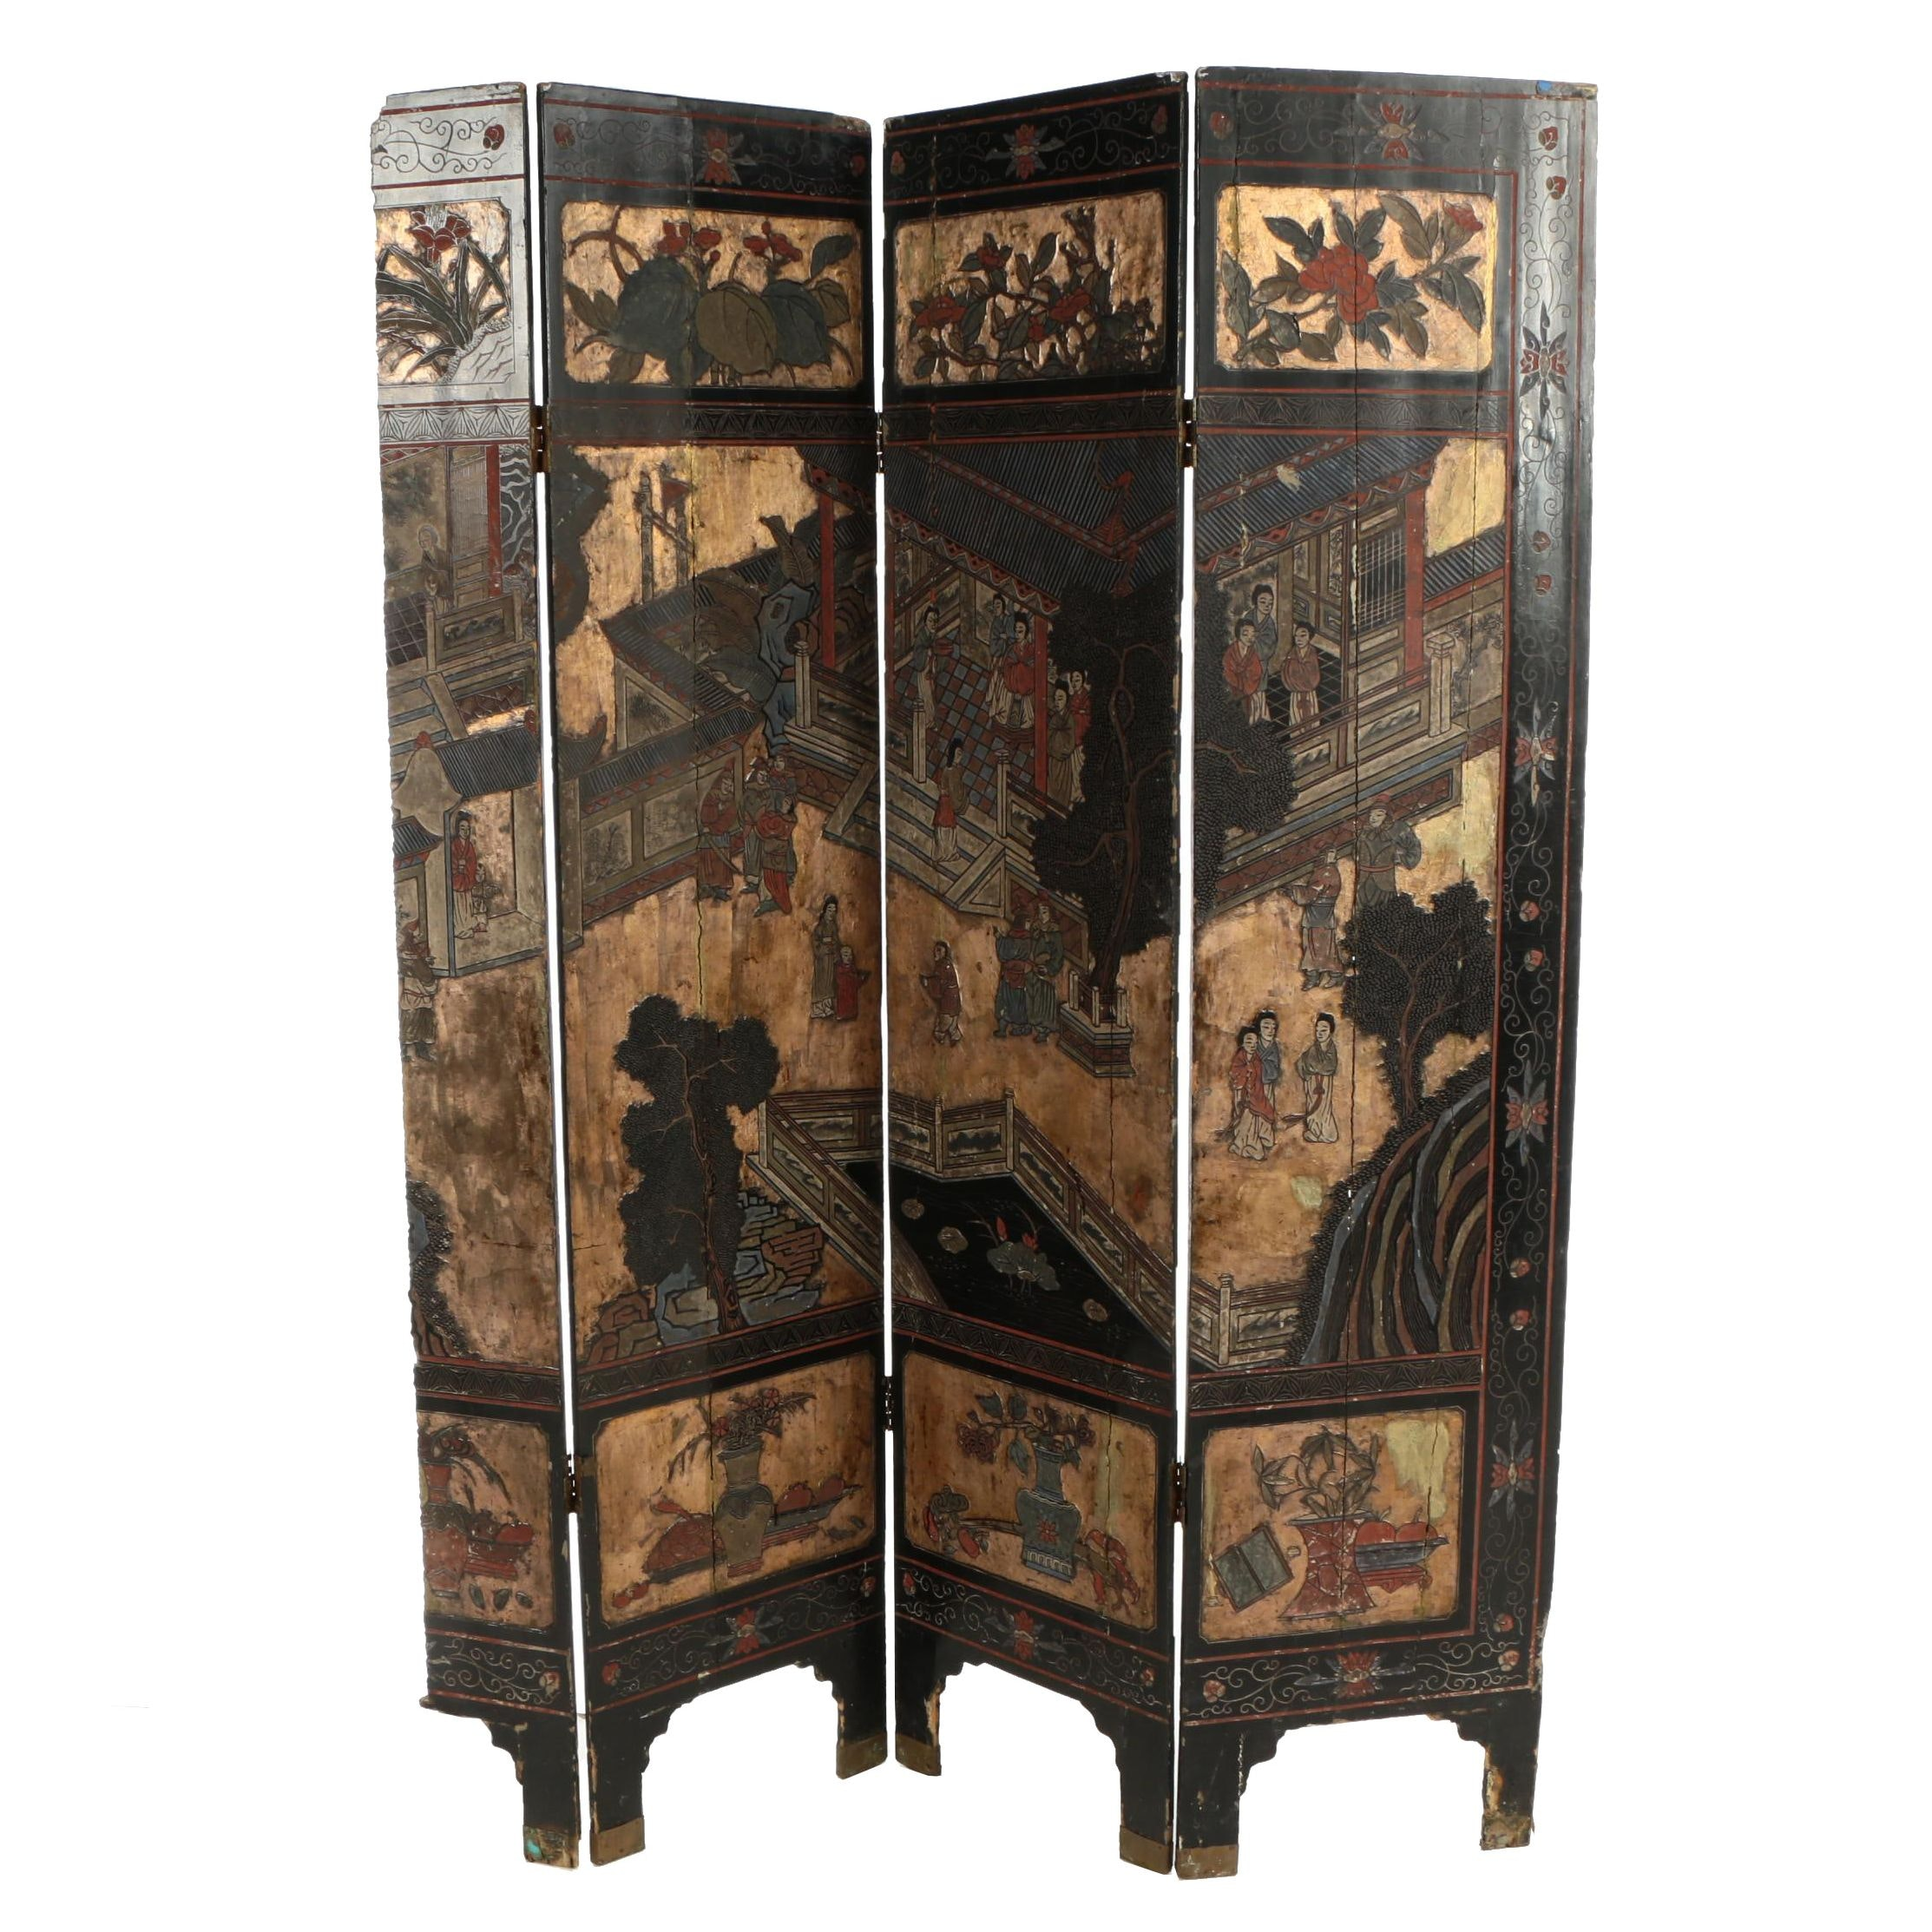 Chinese Coromandel Lacquer Folding Screen, Late 19th/Early 20th Century